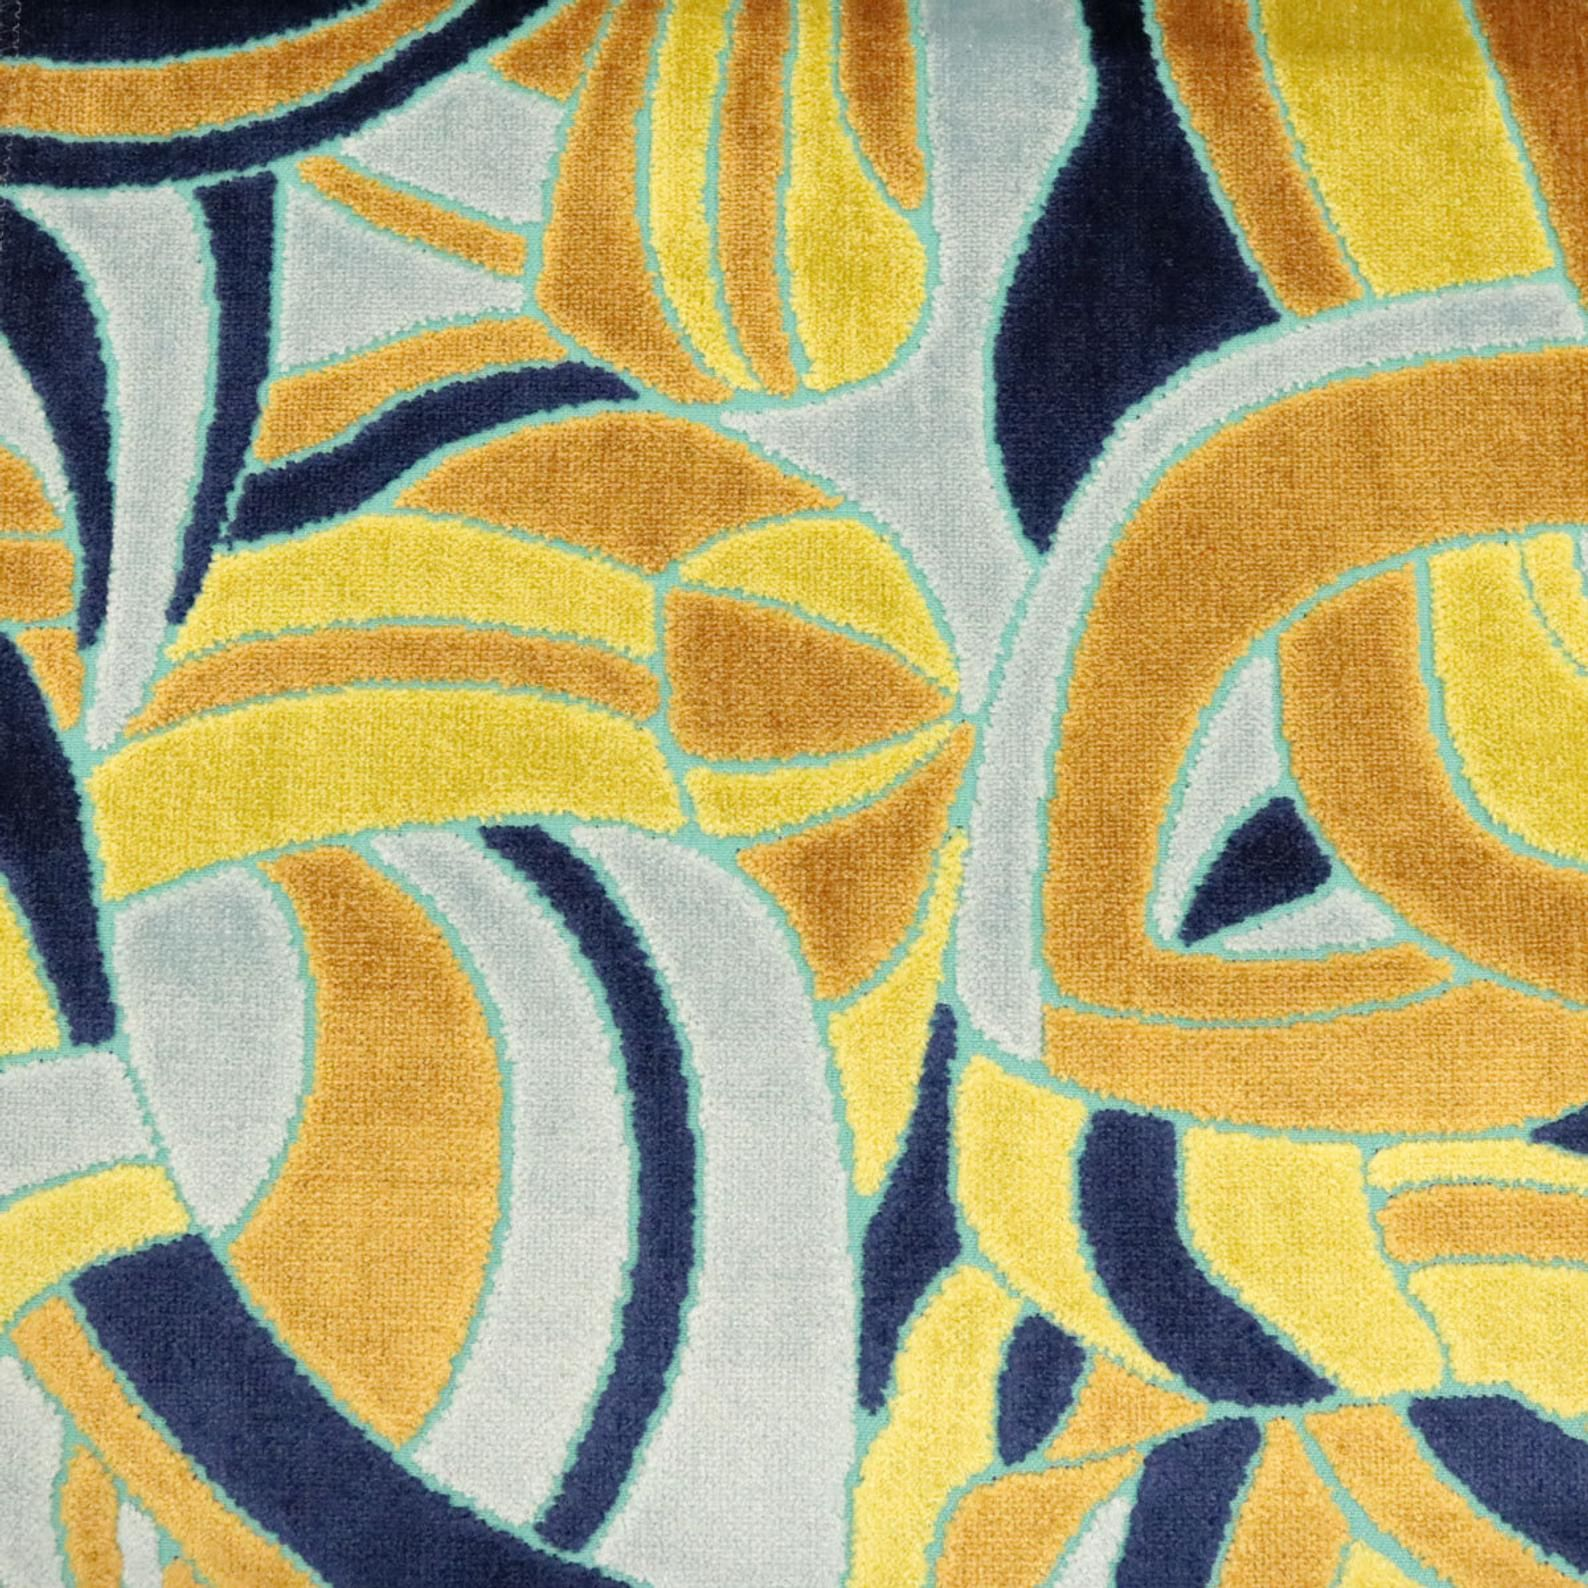 Velvet Upholstery Fabric - Crescent - Modern Pattern Cut Velvet Upholstery Fabric by the Yard - Seashore